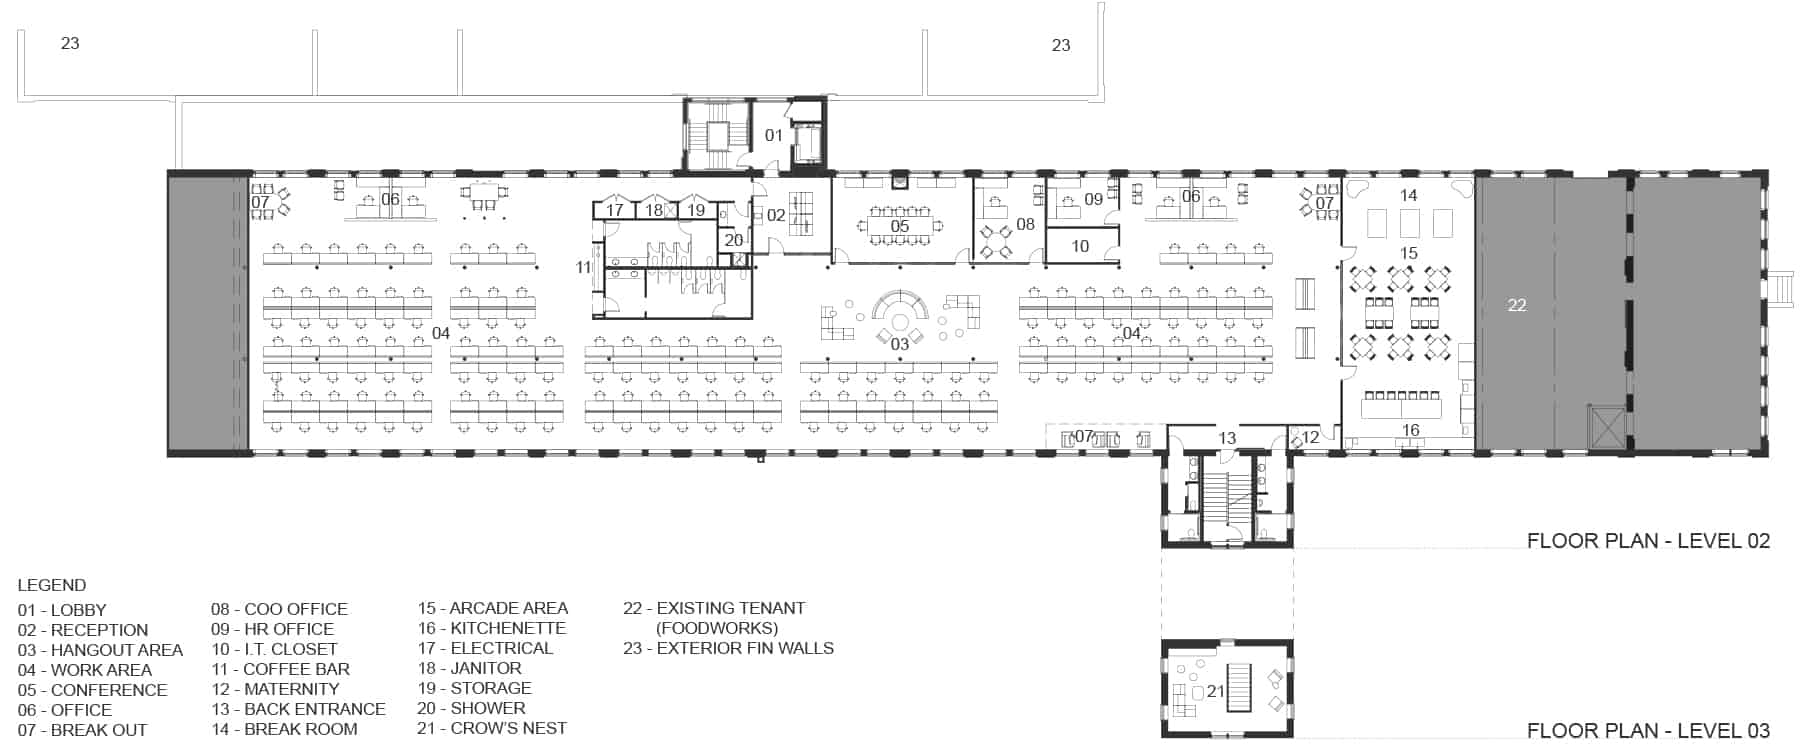 16-015_AD-100_Floor Plan (1-32in – 1ft) 2